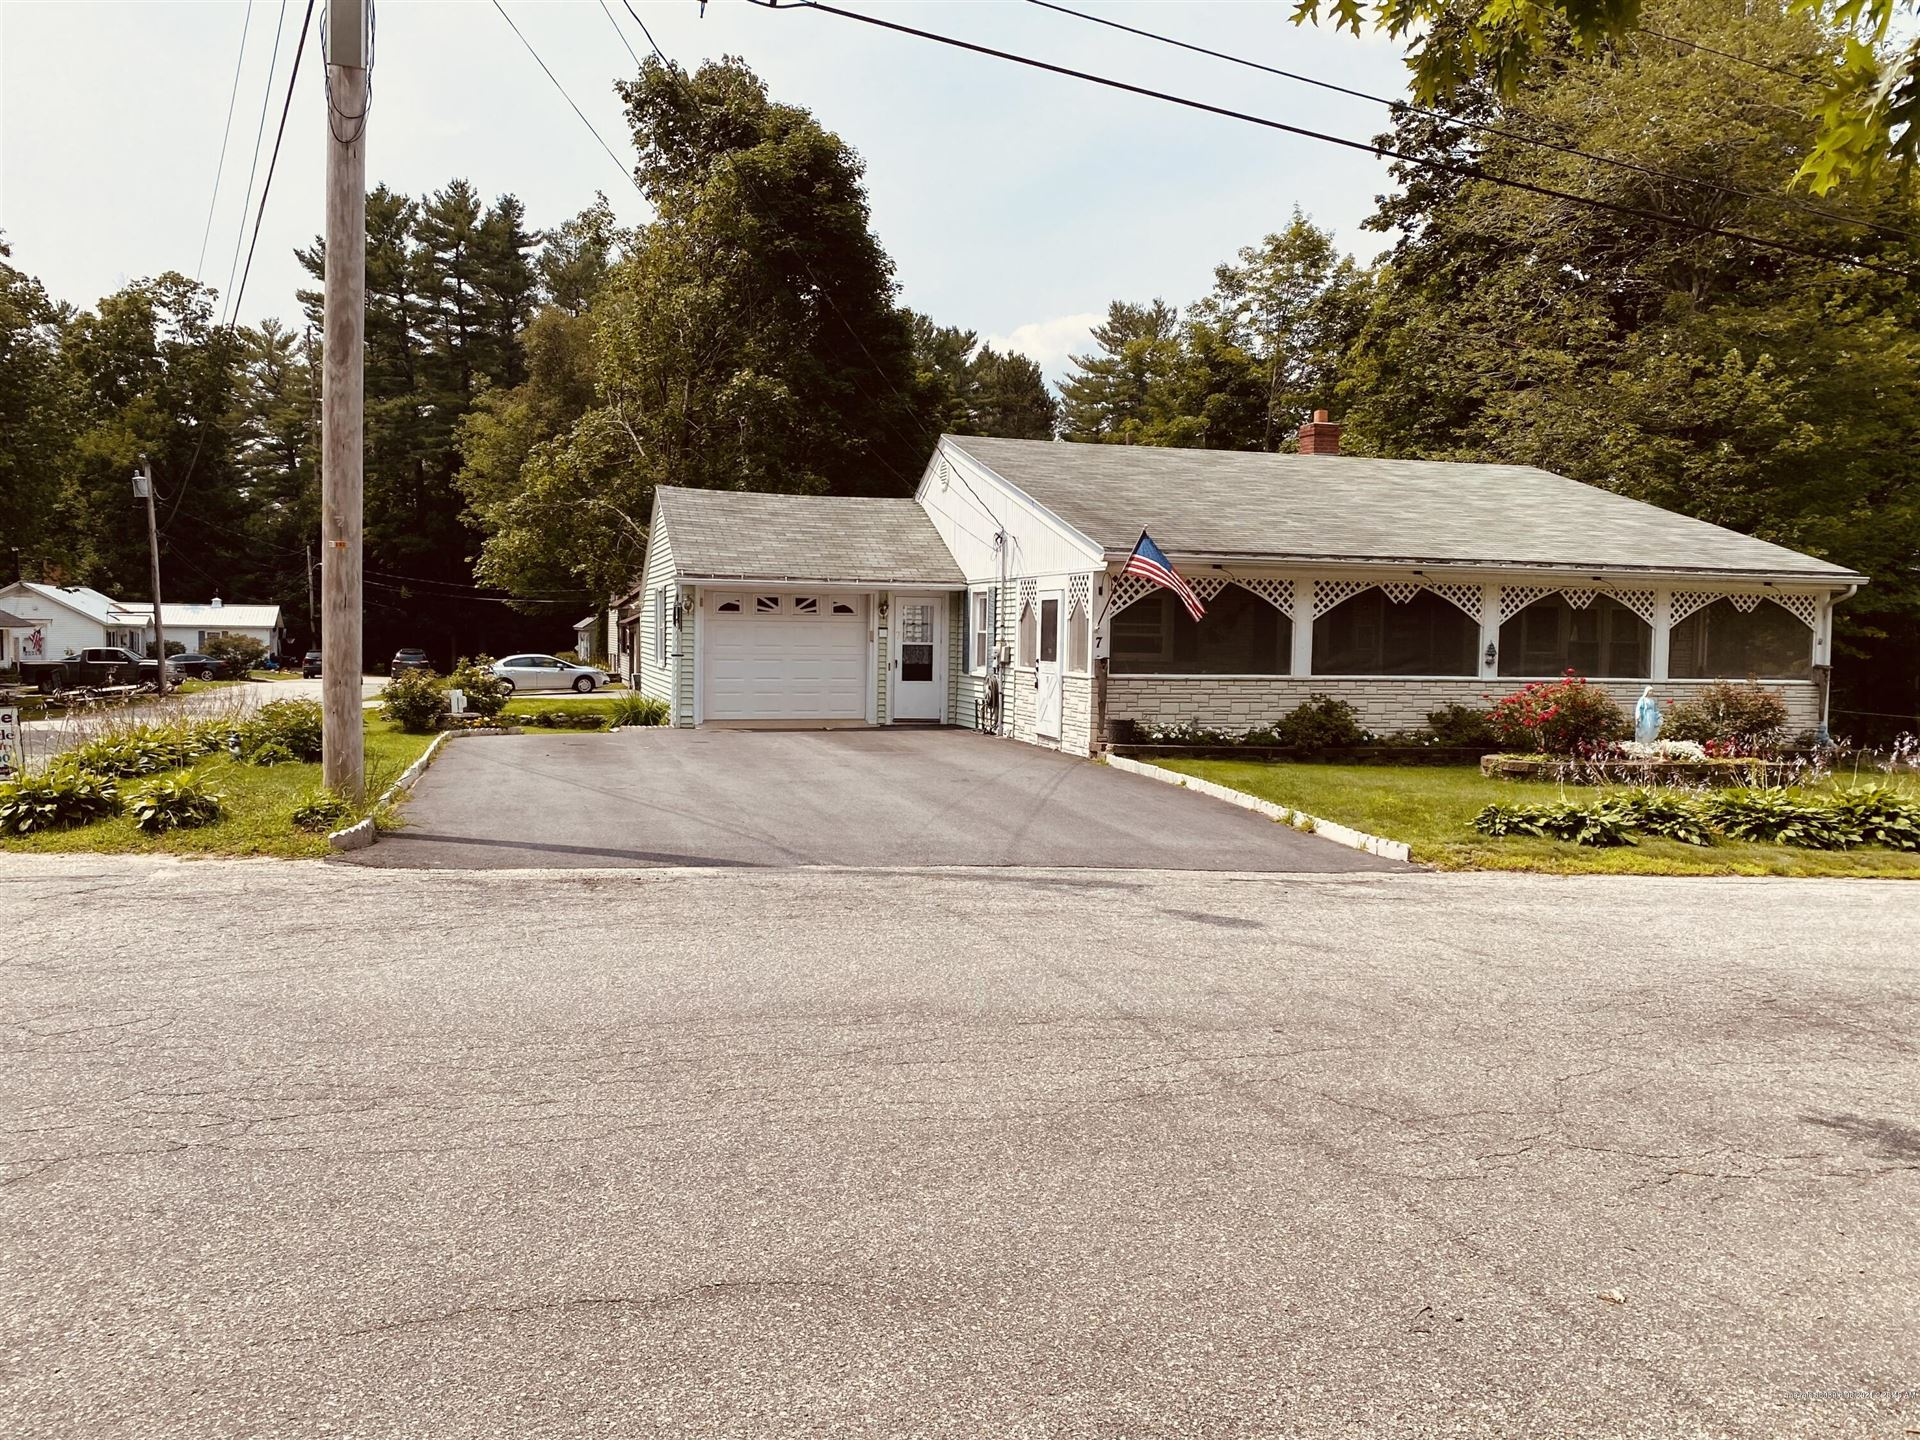 Photo of 7 Hillcrest Road, Livermore Falls, ME 04254 (MLS # 1503756)